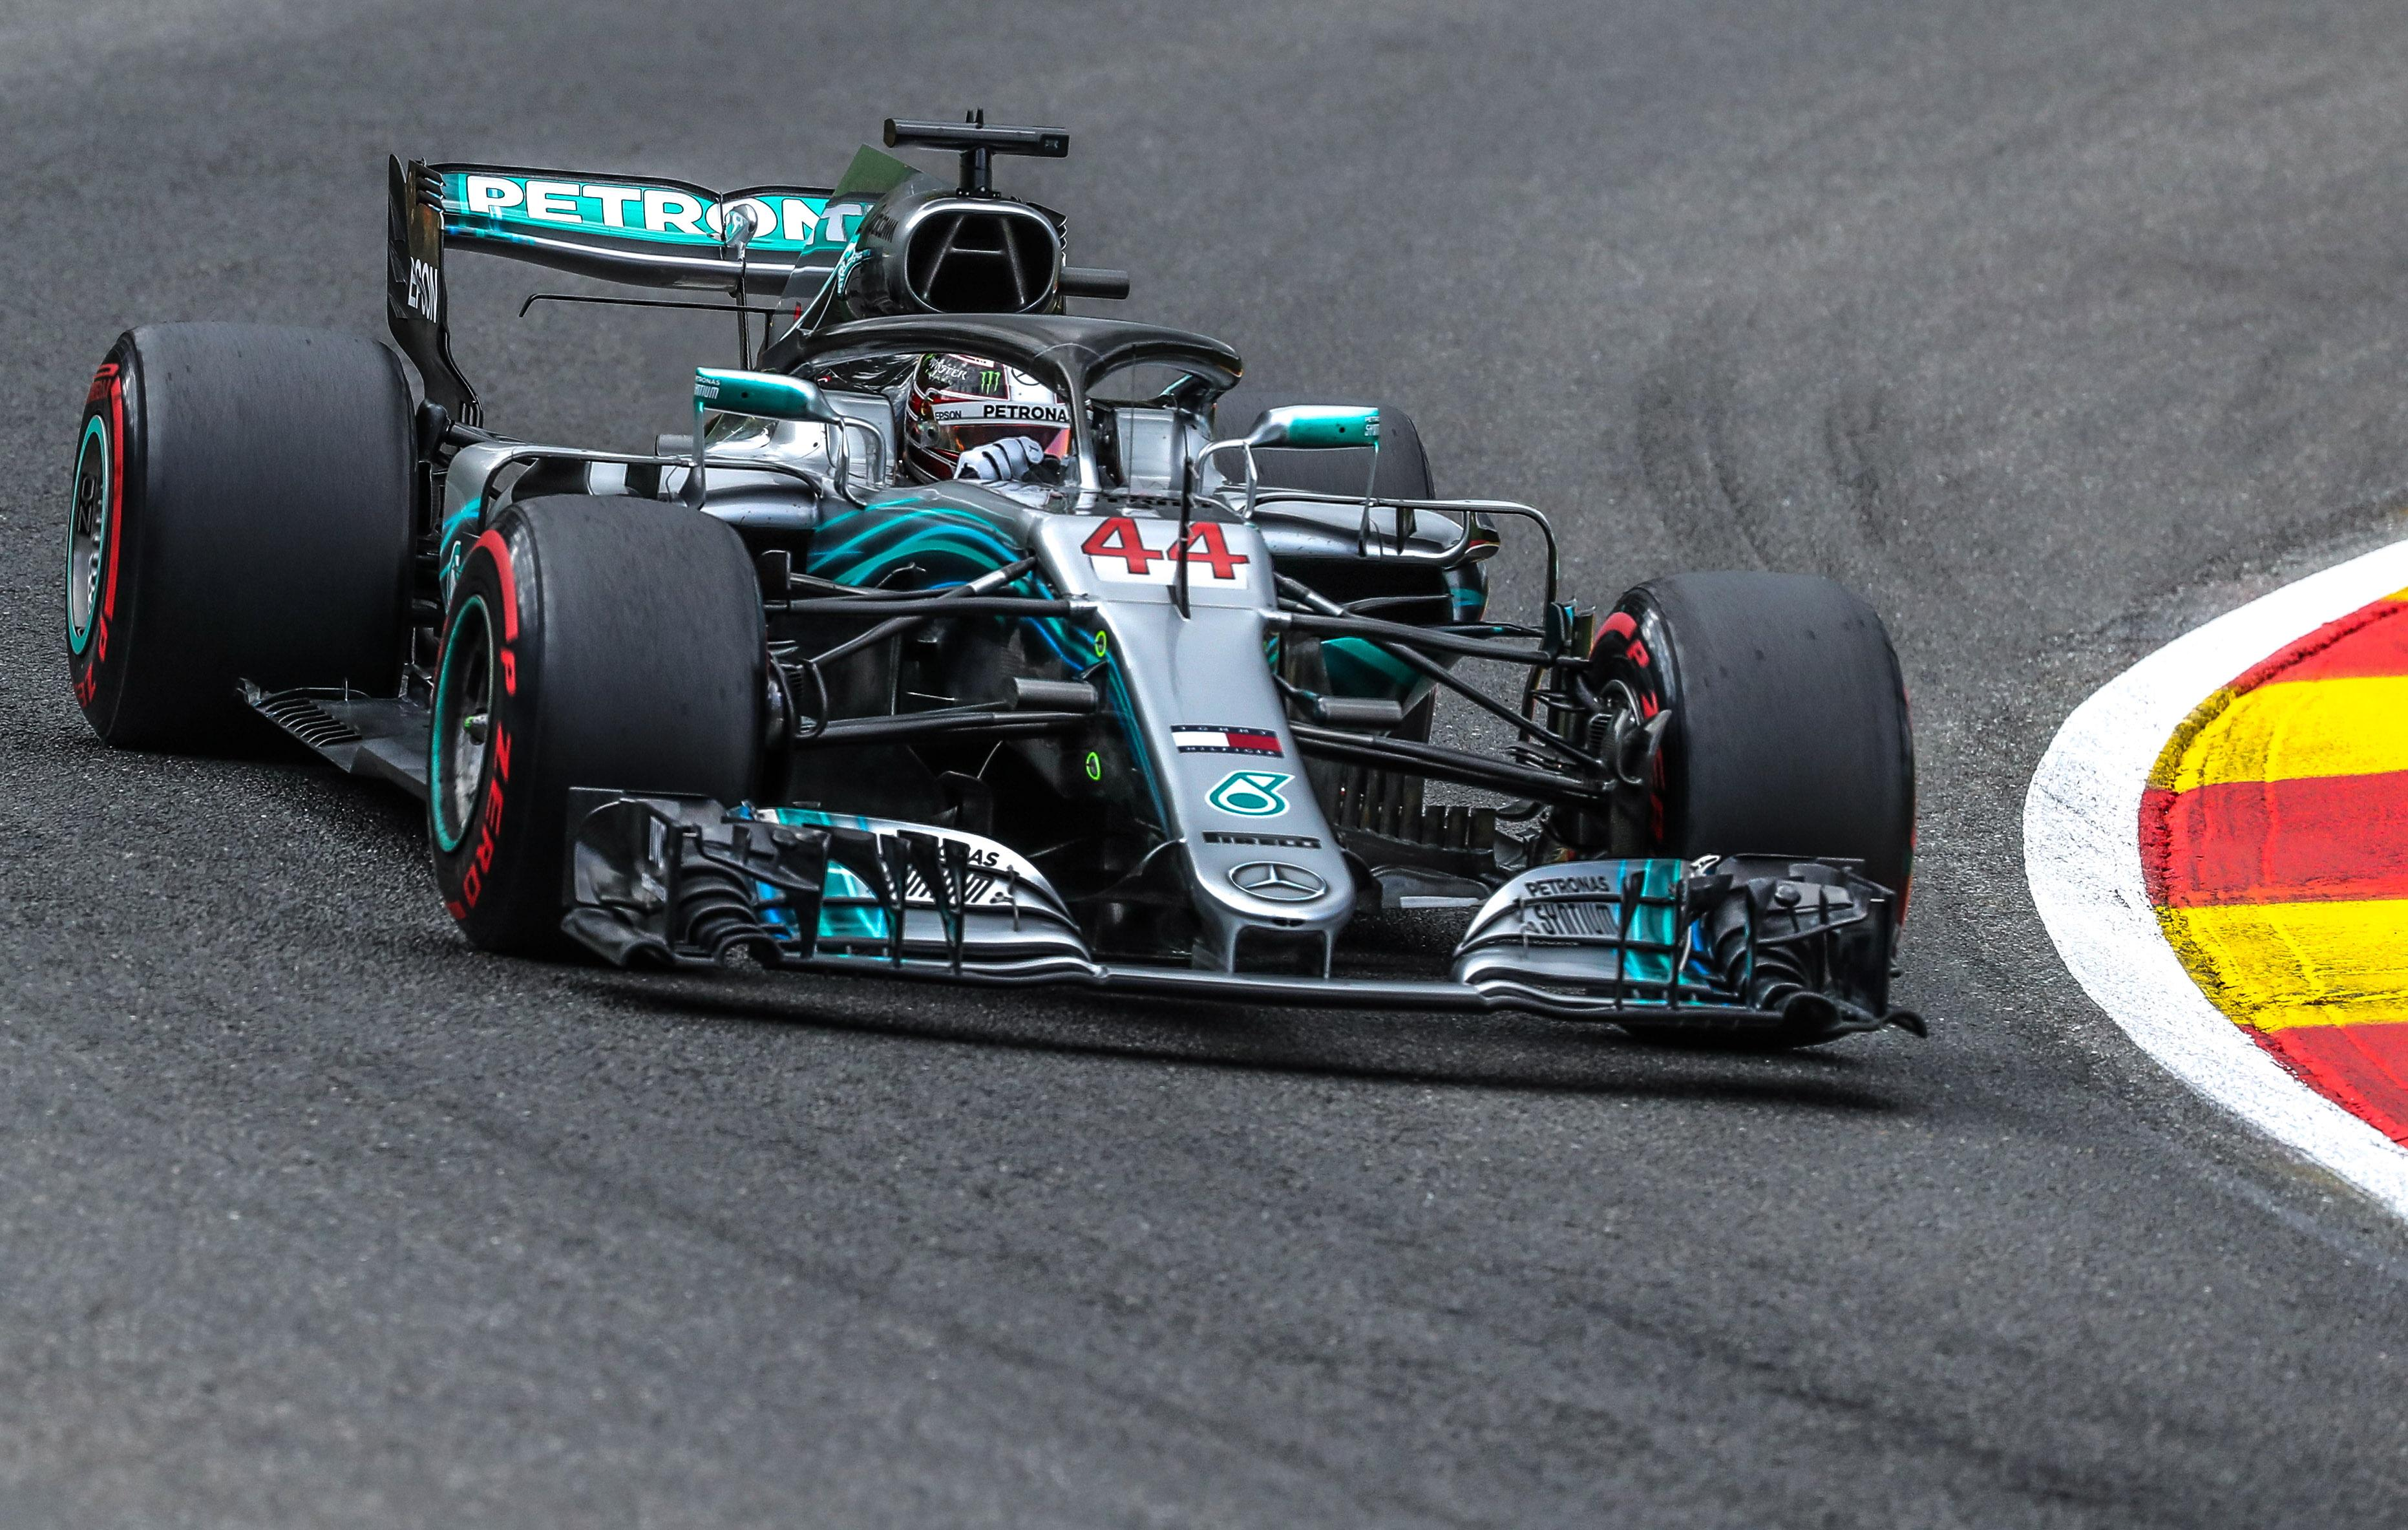 Lewis Hamilton will start the Belgian Grand Prix from pole position after impressing in the rain